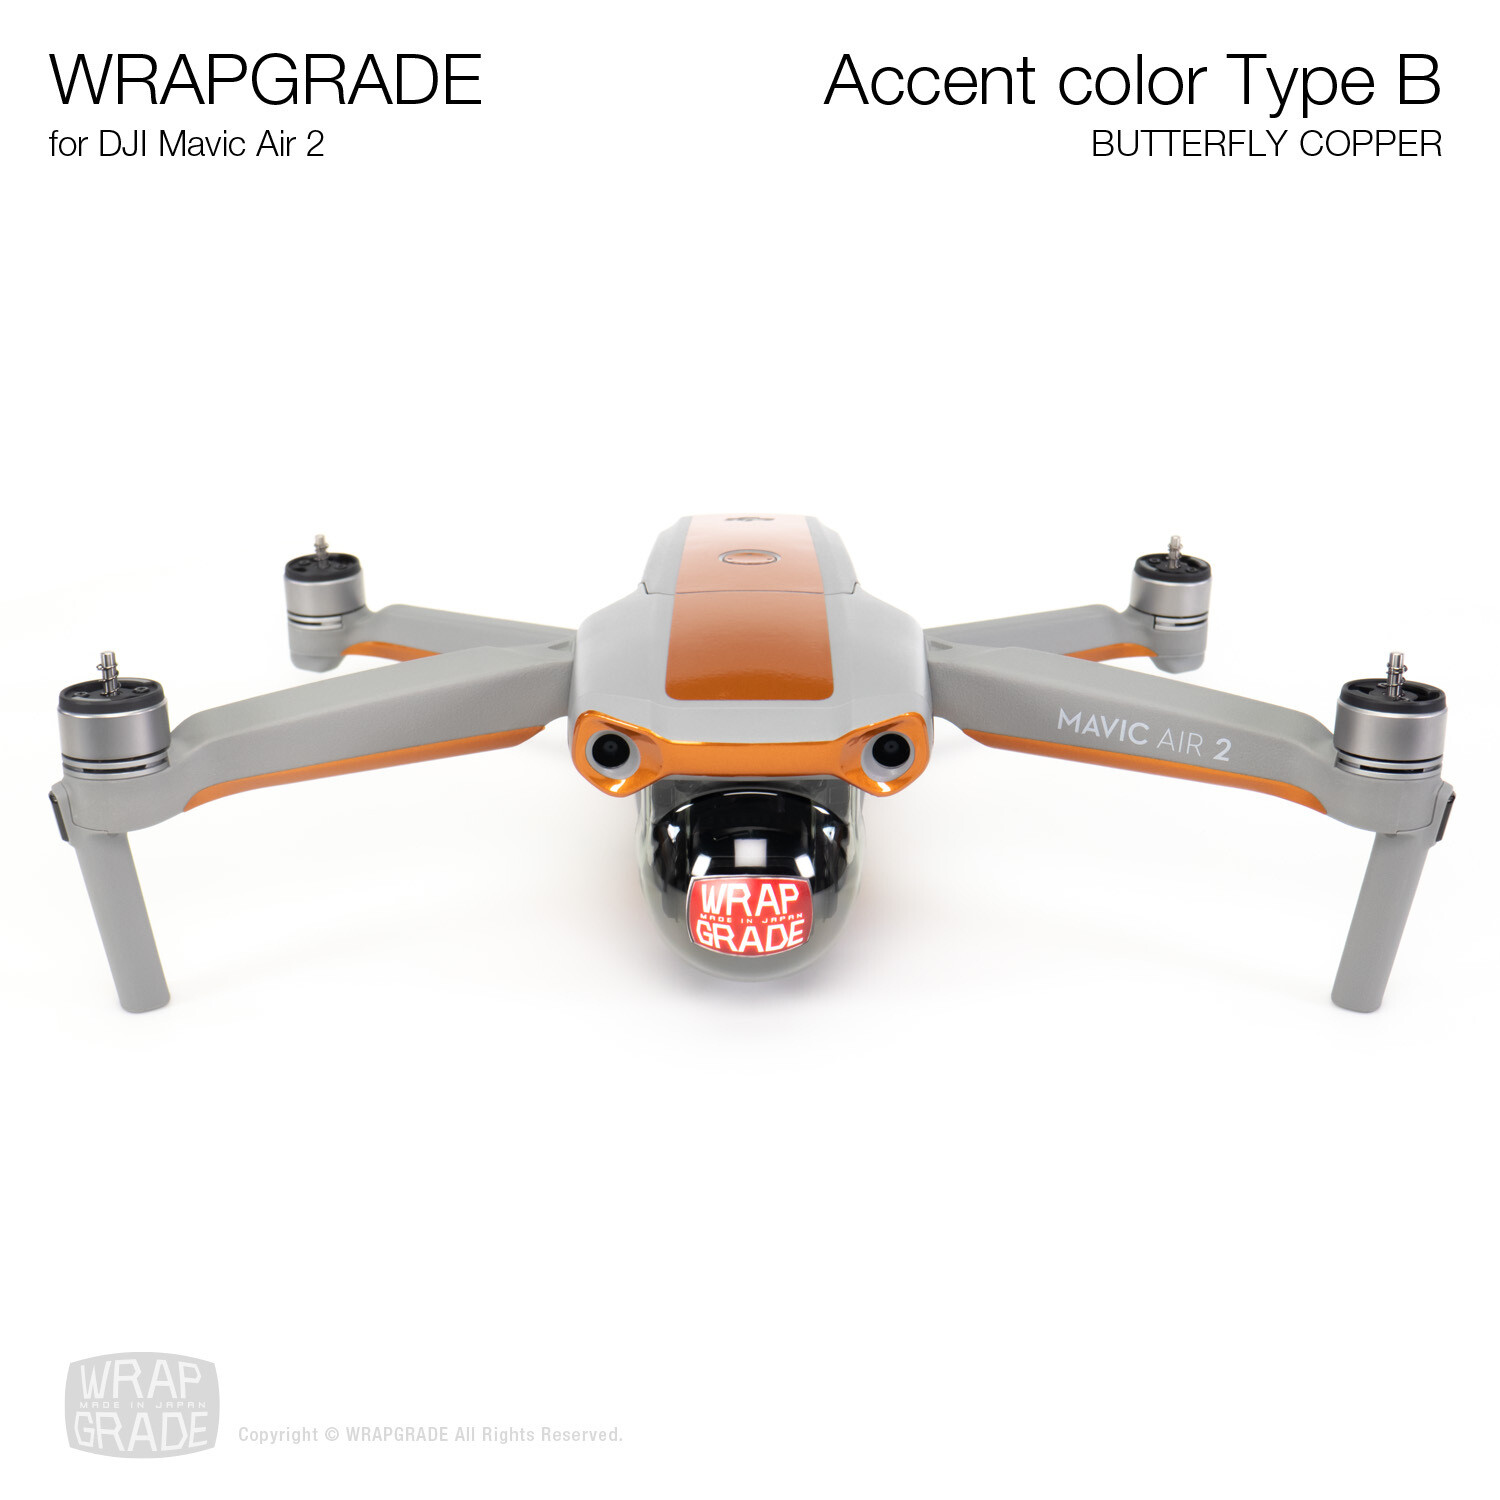 Wrapgrade for DJI Mavic Air 2 | Accent Color B (BUTTERFLY COPPER)